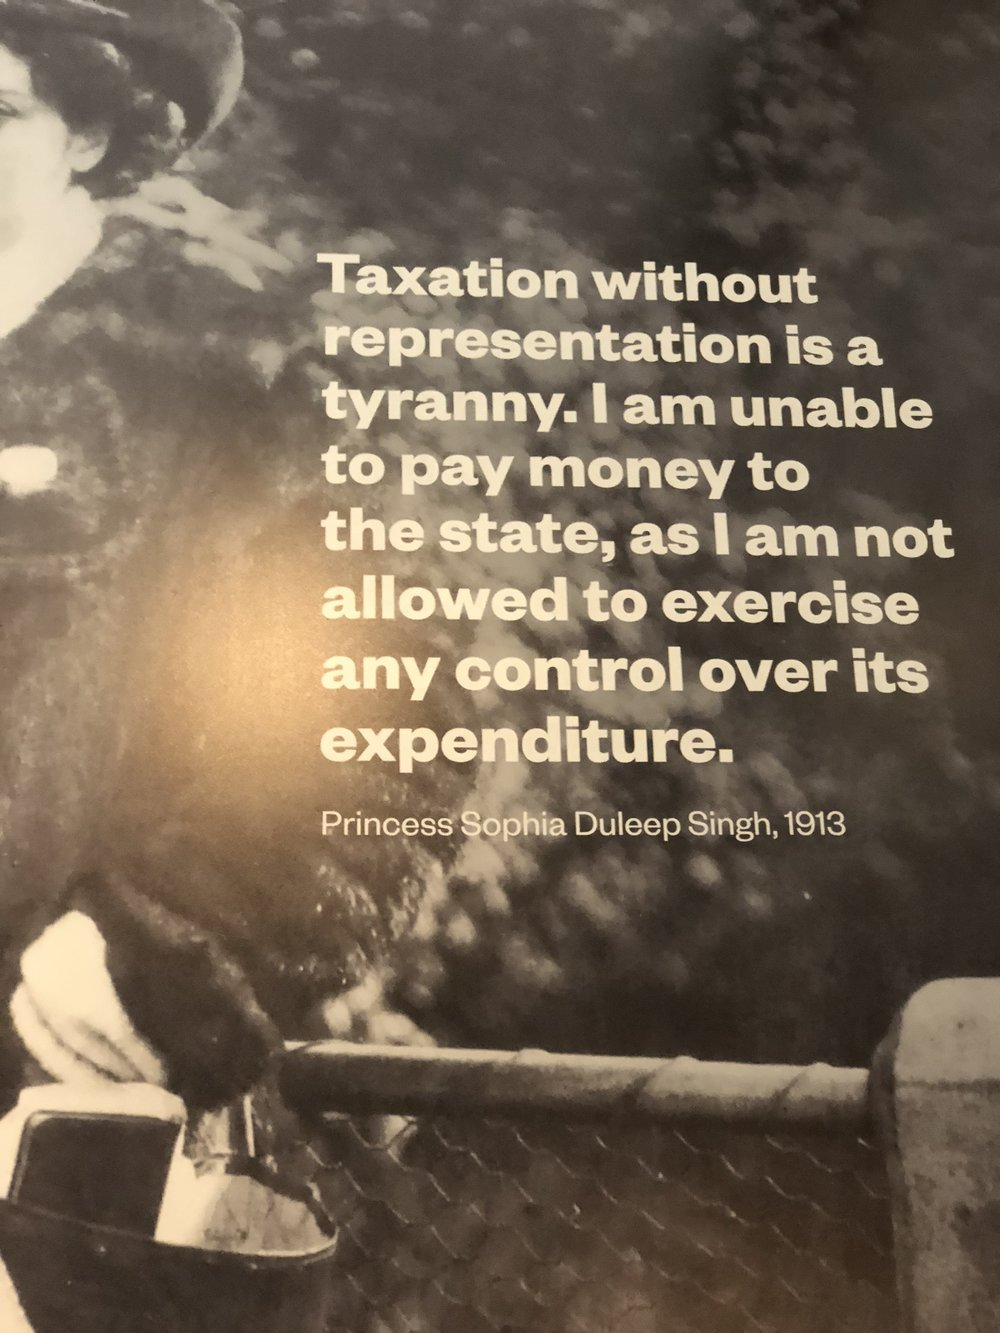 """""""Taxation without representation is a tyranny. I am unable to pay money to the state, as I am not allowed to exercise any control over its expenditure."""" - Princess Sophia Duleep Singh, 1913."""